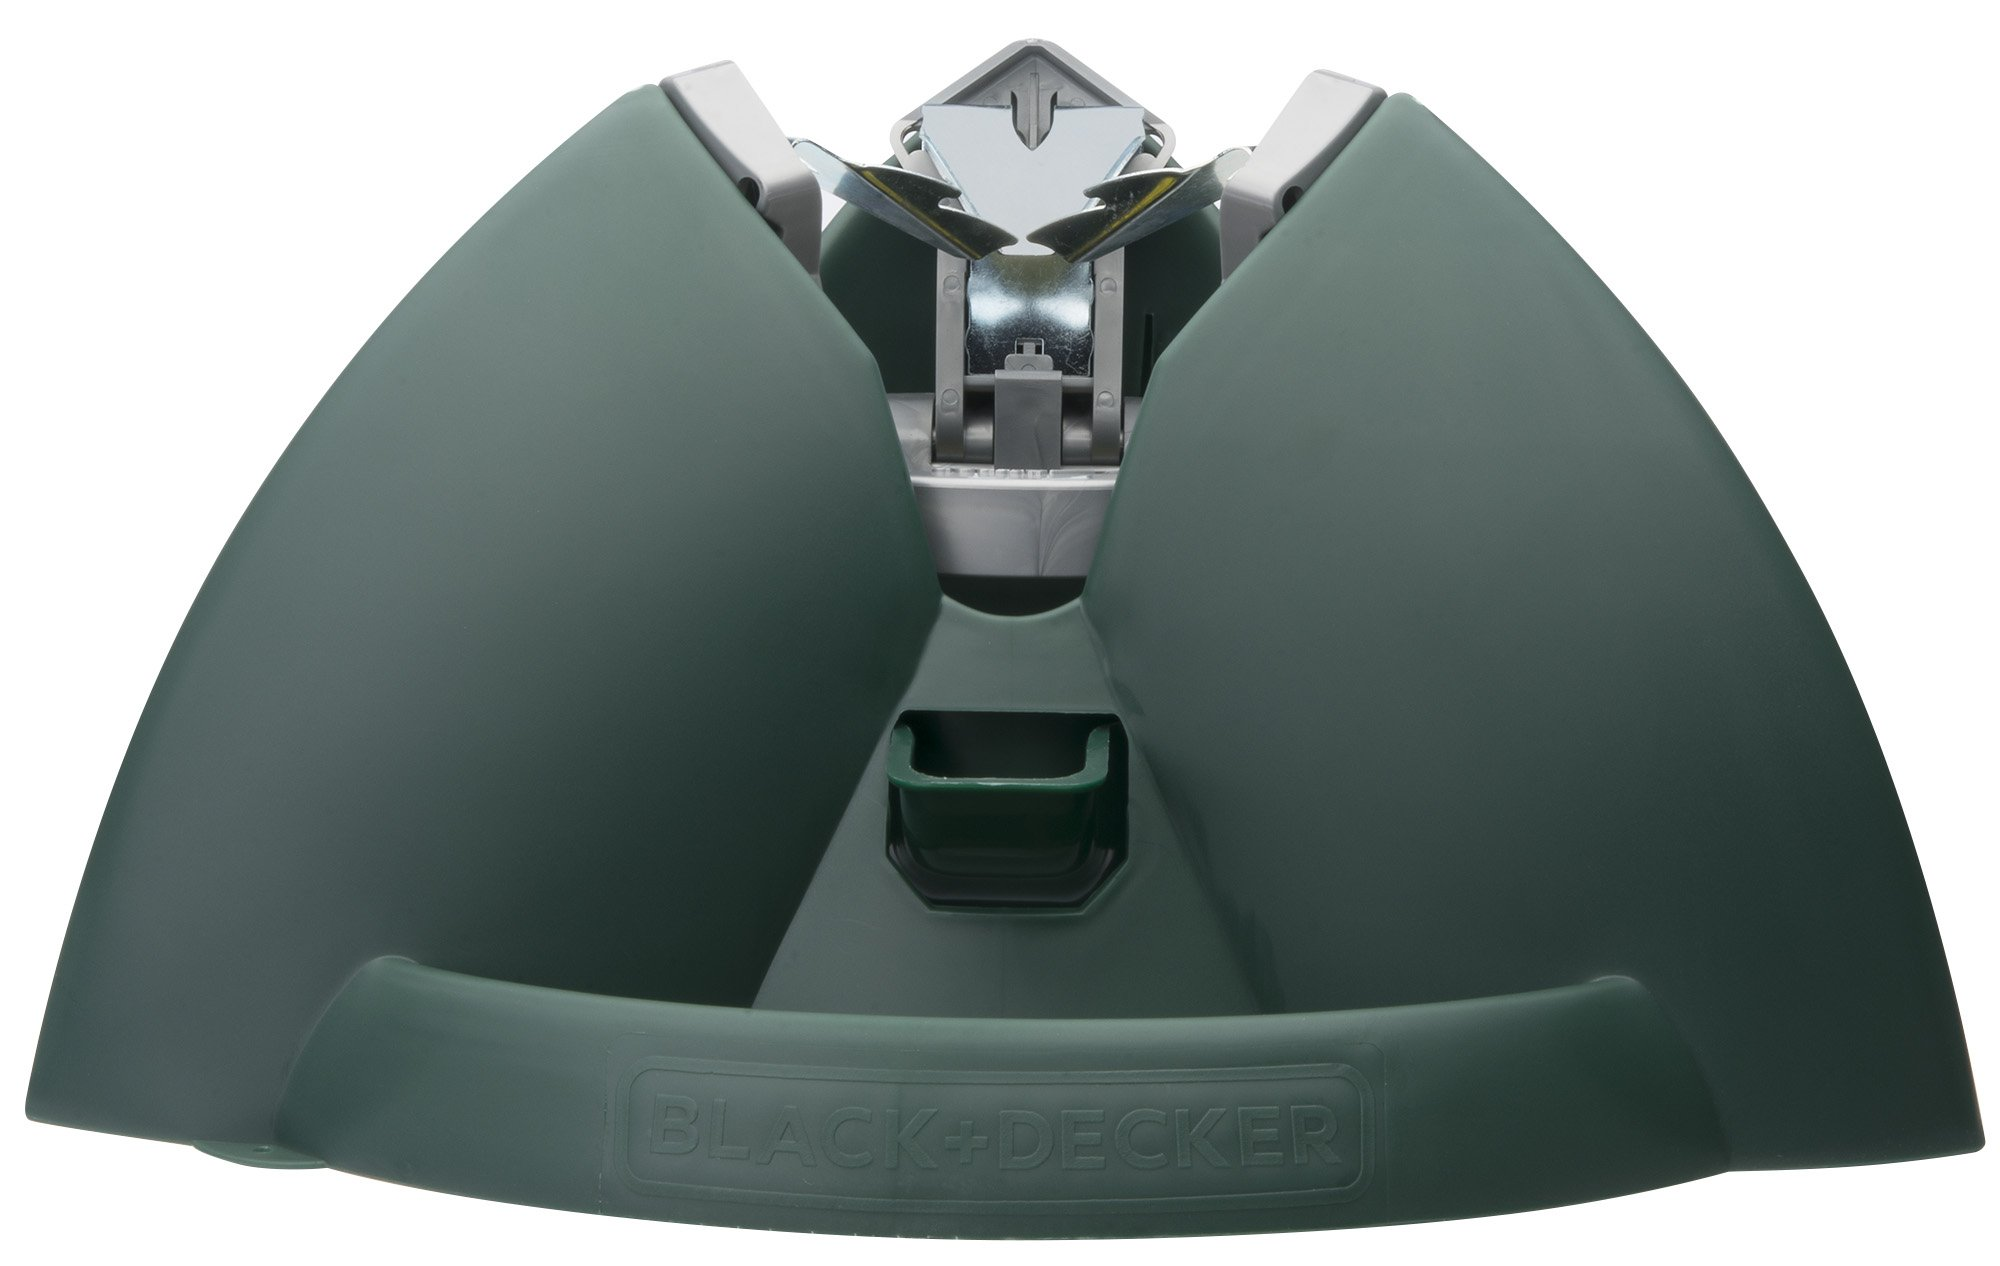 BOND MANUFACTURING BD3037 Smart Tree Stand, Holds 9', Green